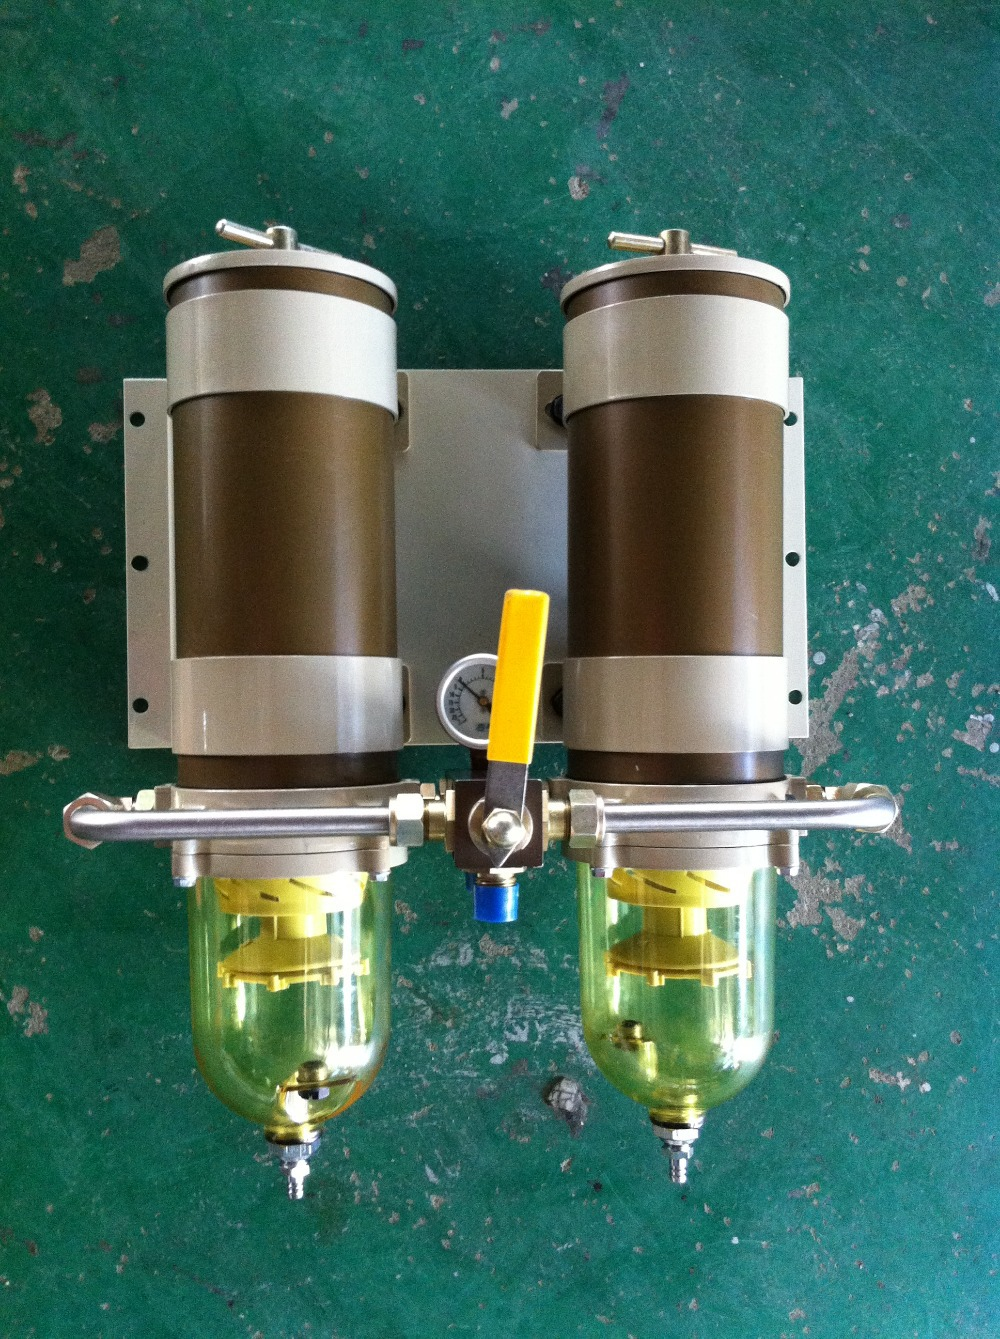 Universal Heavy Duty Not Racor 1000fh Turbine Generators Diesel Fuel Filter Engine Water Separator 731000fhx 2020pm In Pumps From Automobiles